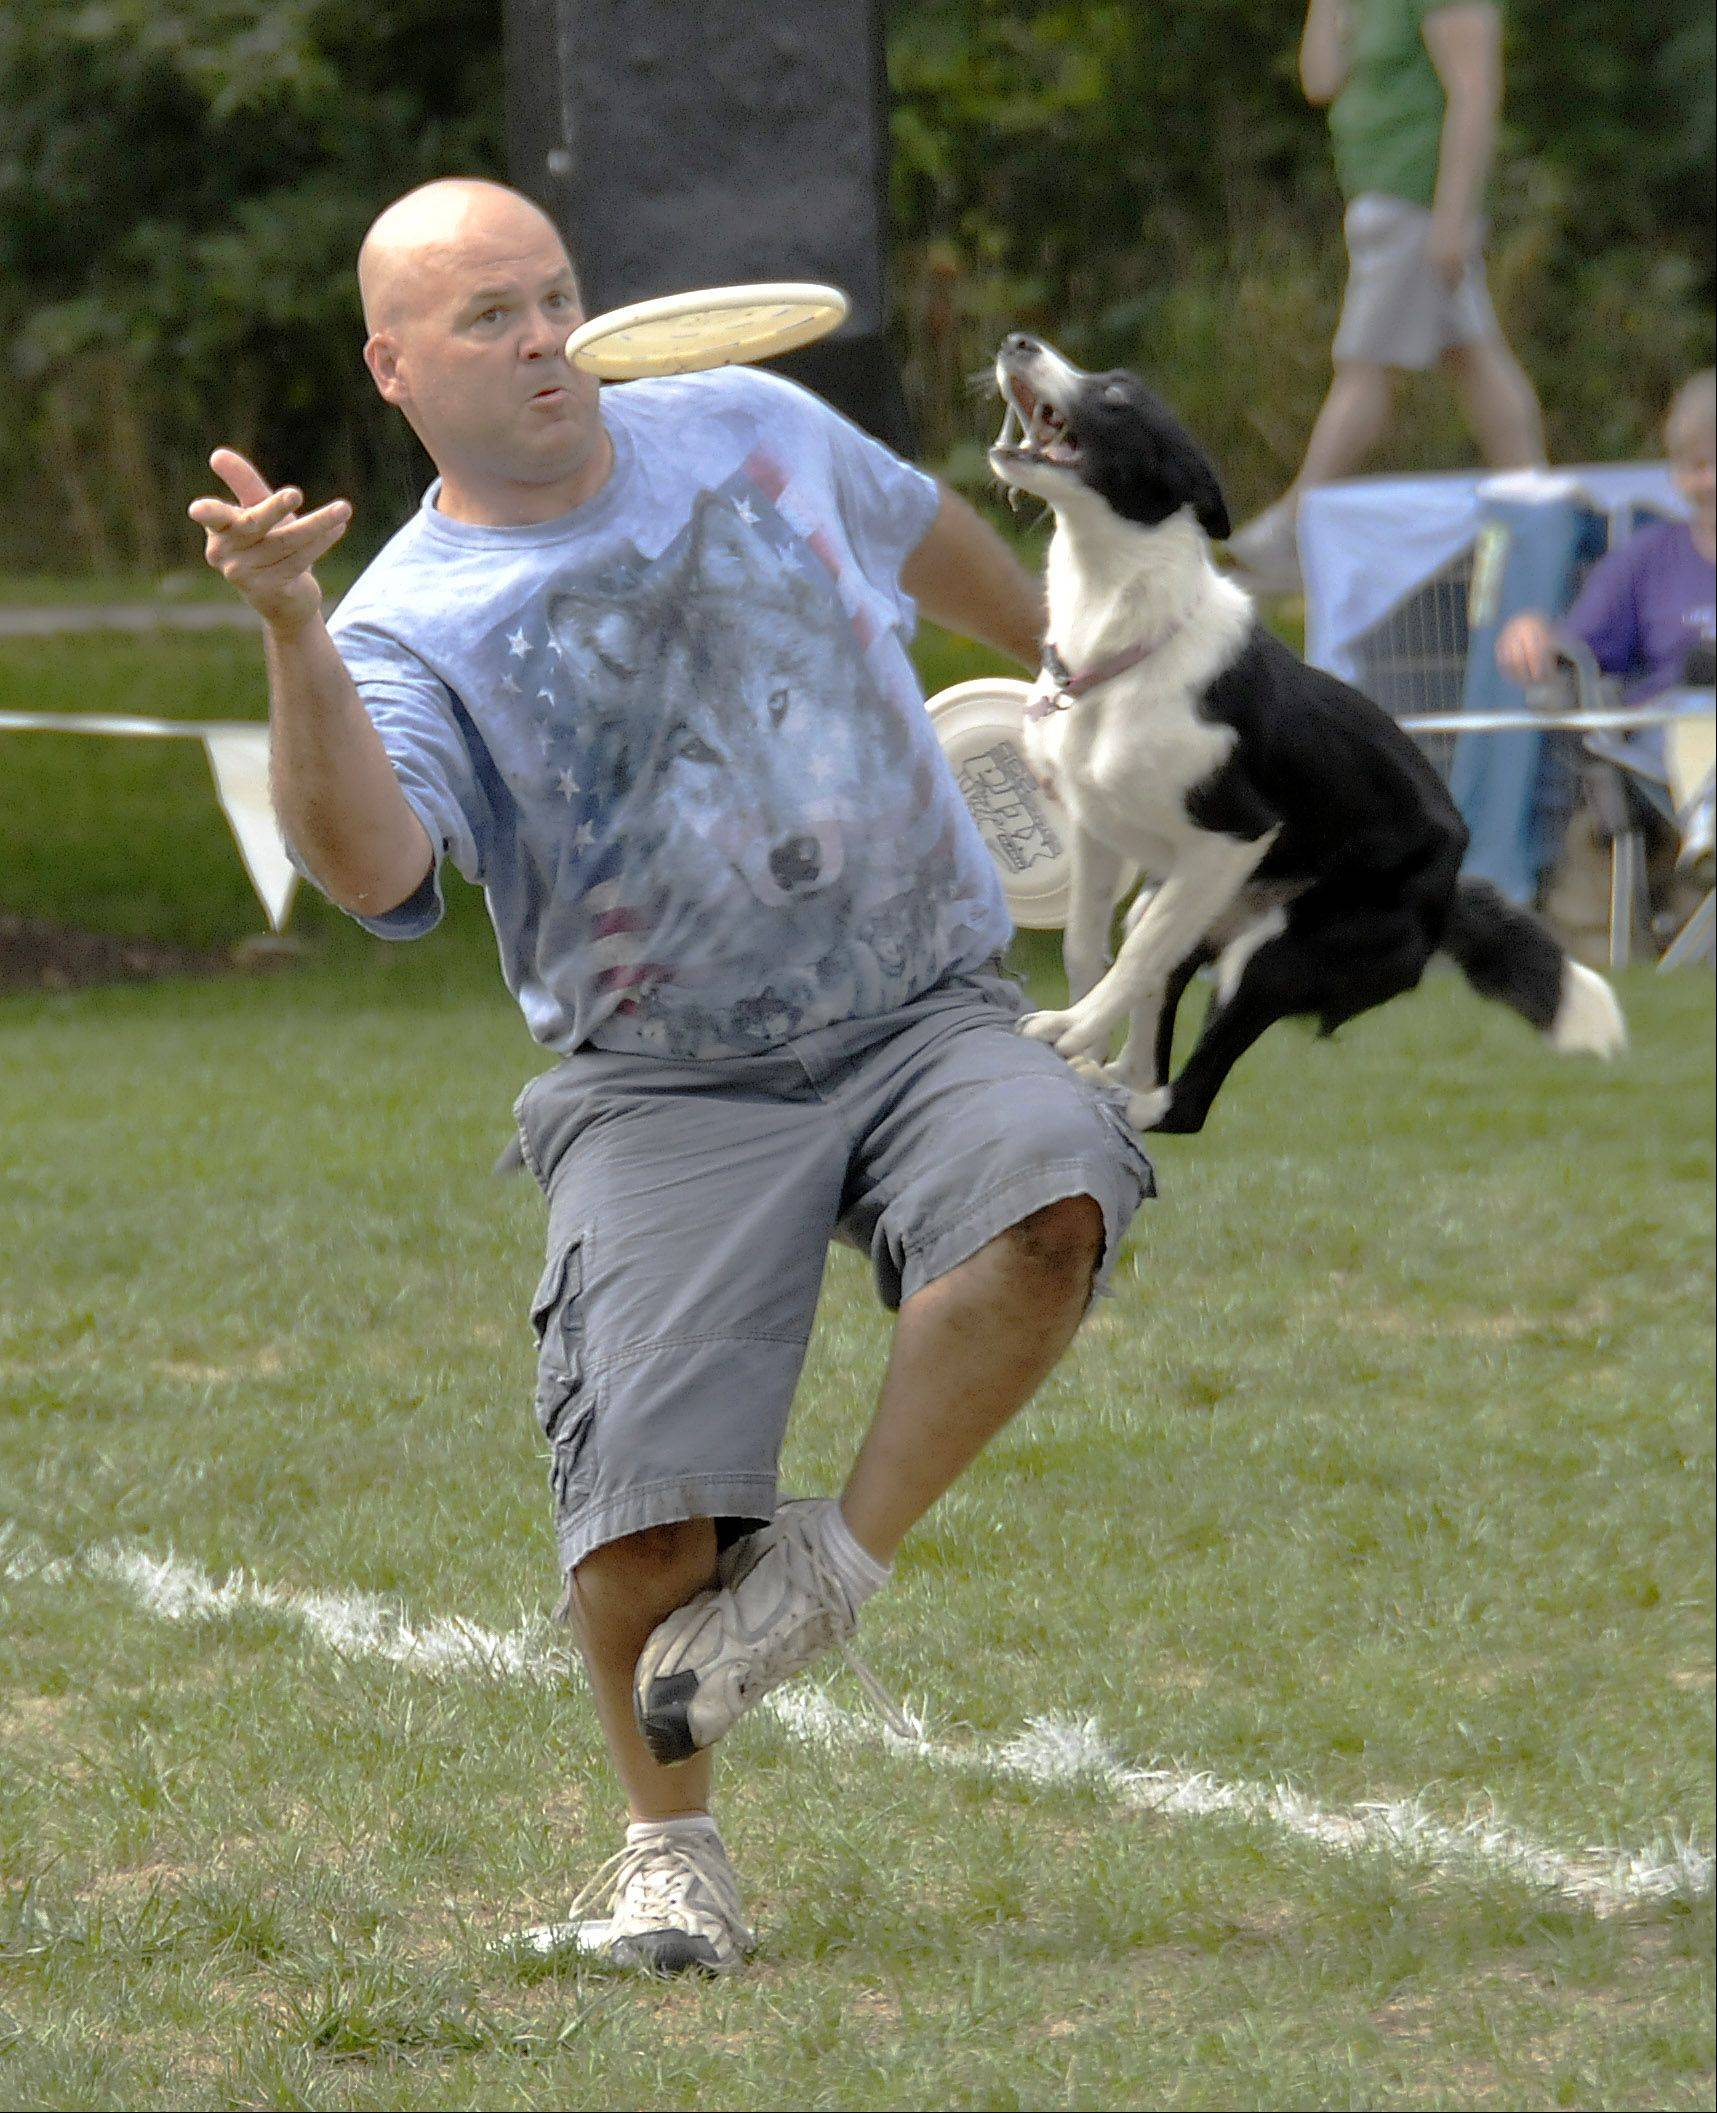 Riley, a border collie, jumps up to grab a flying disc tossed by his owner, Mark Faragoi, of Plainfield. Naperville's Last Fling festival continued Sunday with the Ashley Whipped disc dog competition.